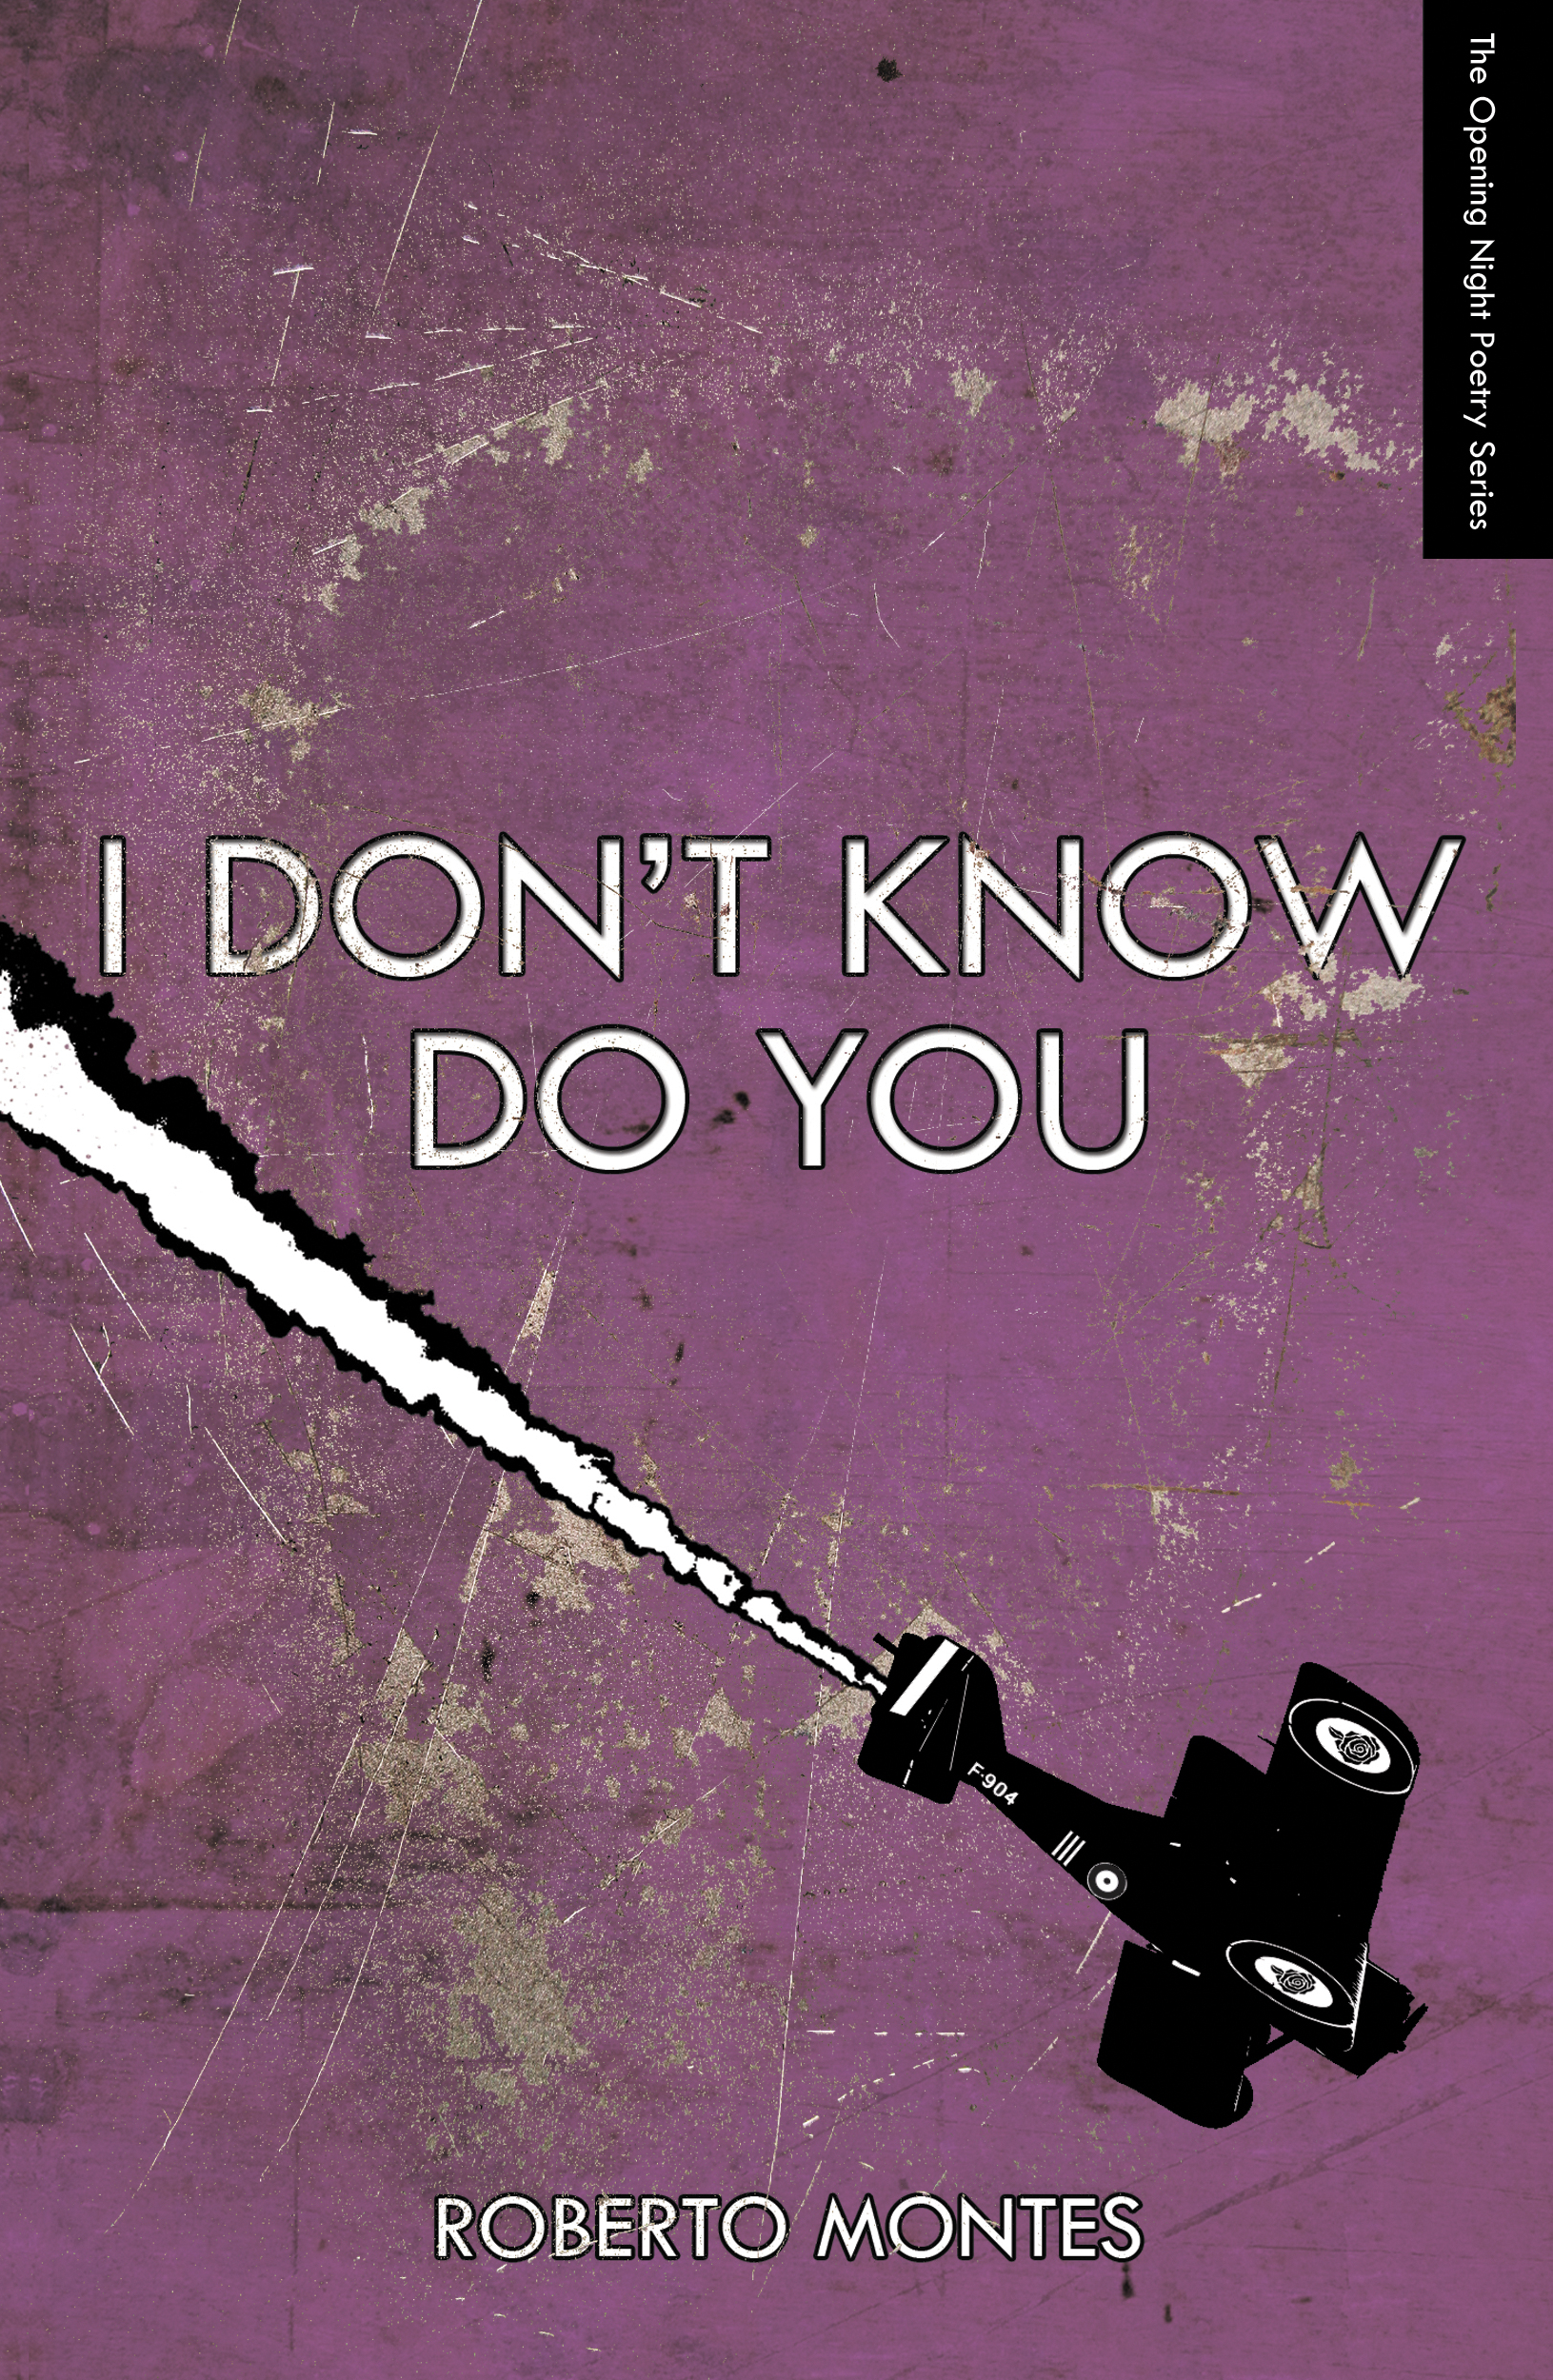 Review: I DON'T KNOW DO YOU by Roberto Montes